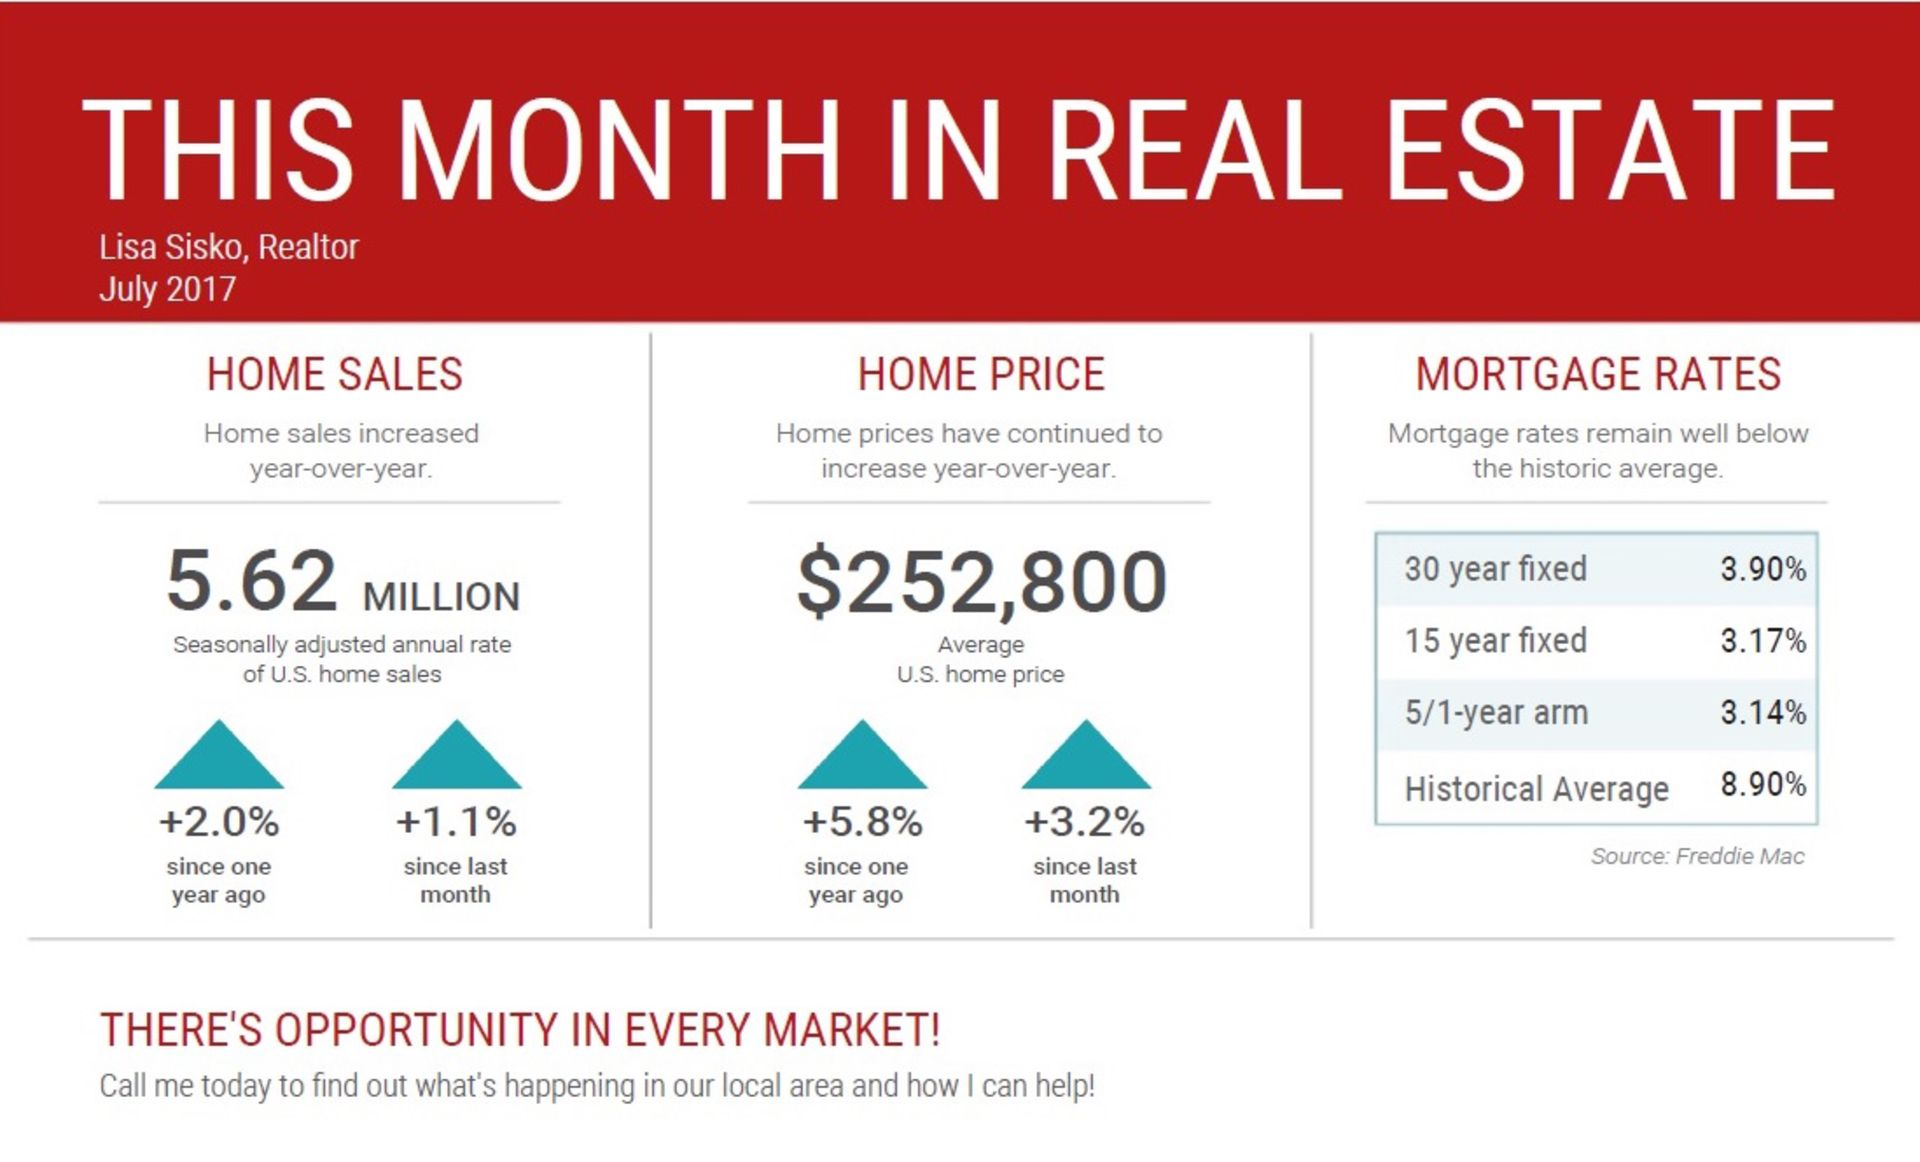 This Month in Real Estate – National Statistics for July 2017